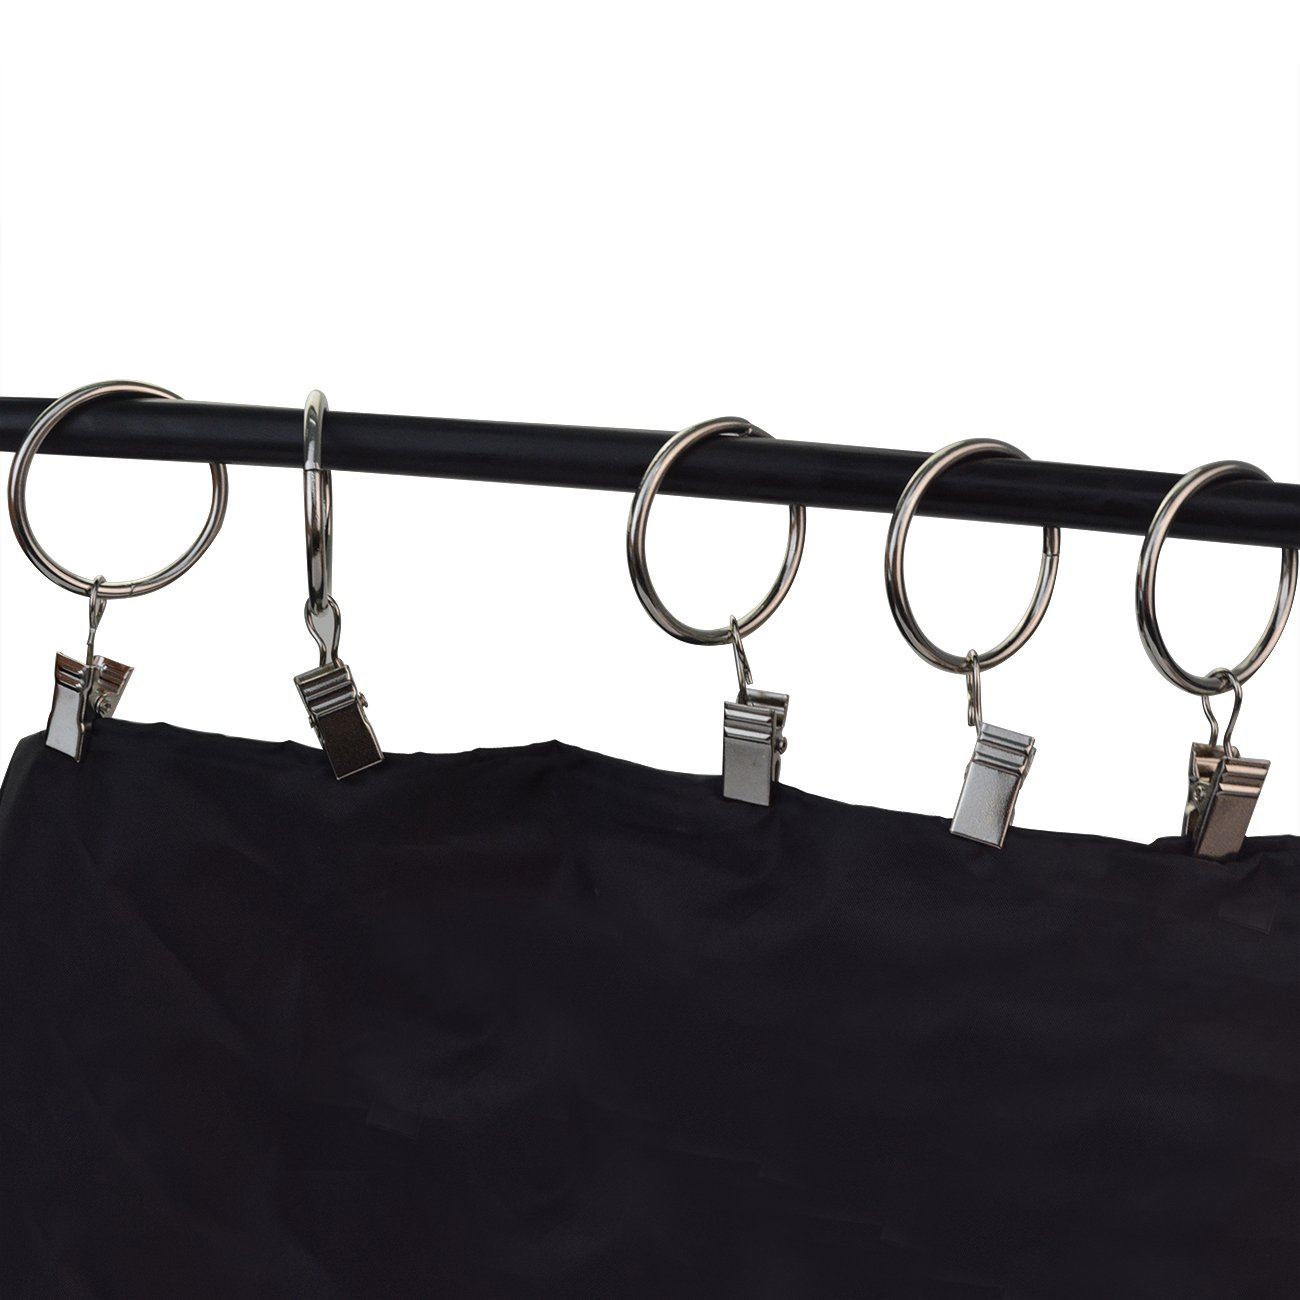 Tojwi 36-pieces Metal Drapery Curtain Rings with Clips